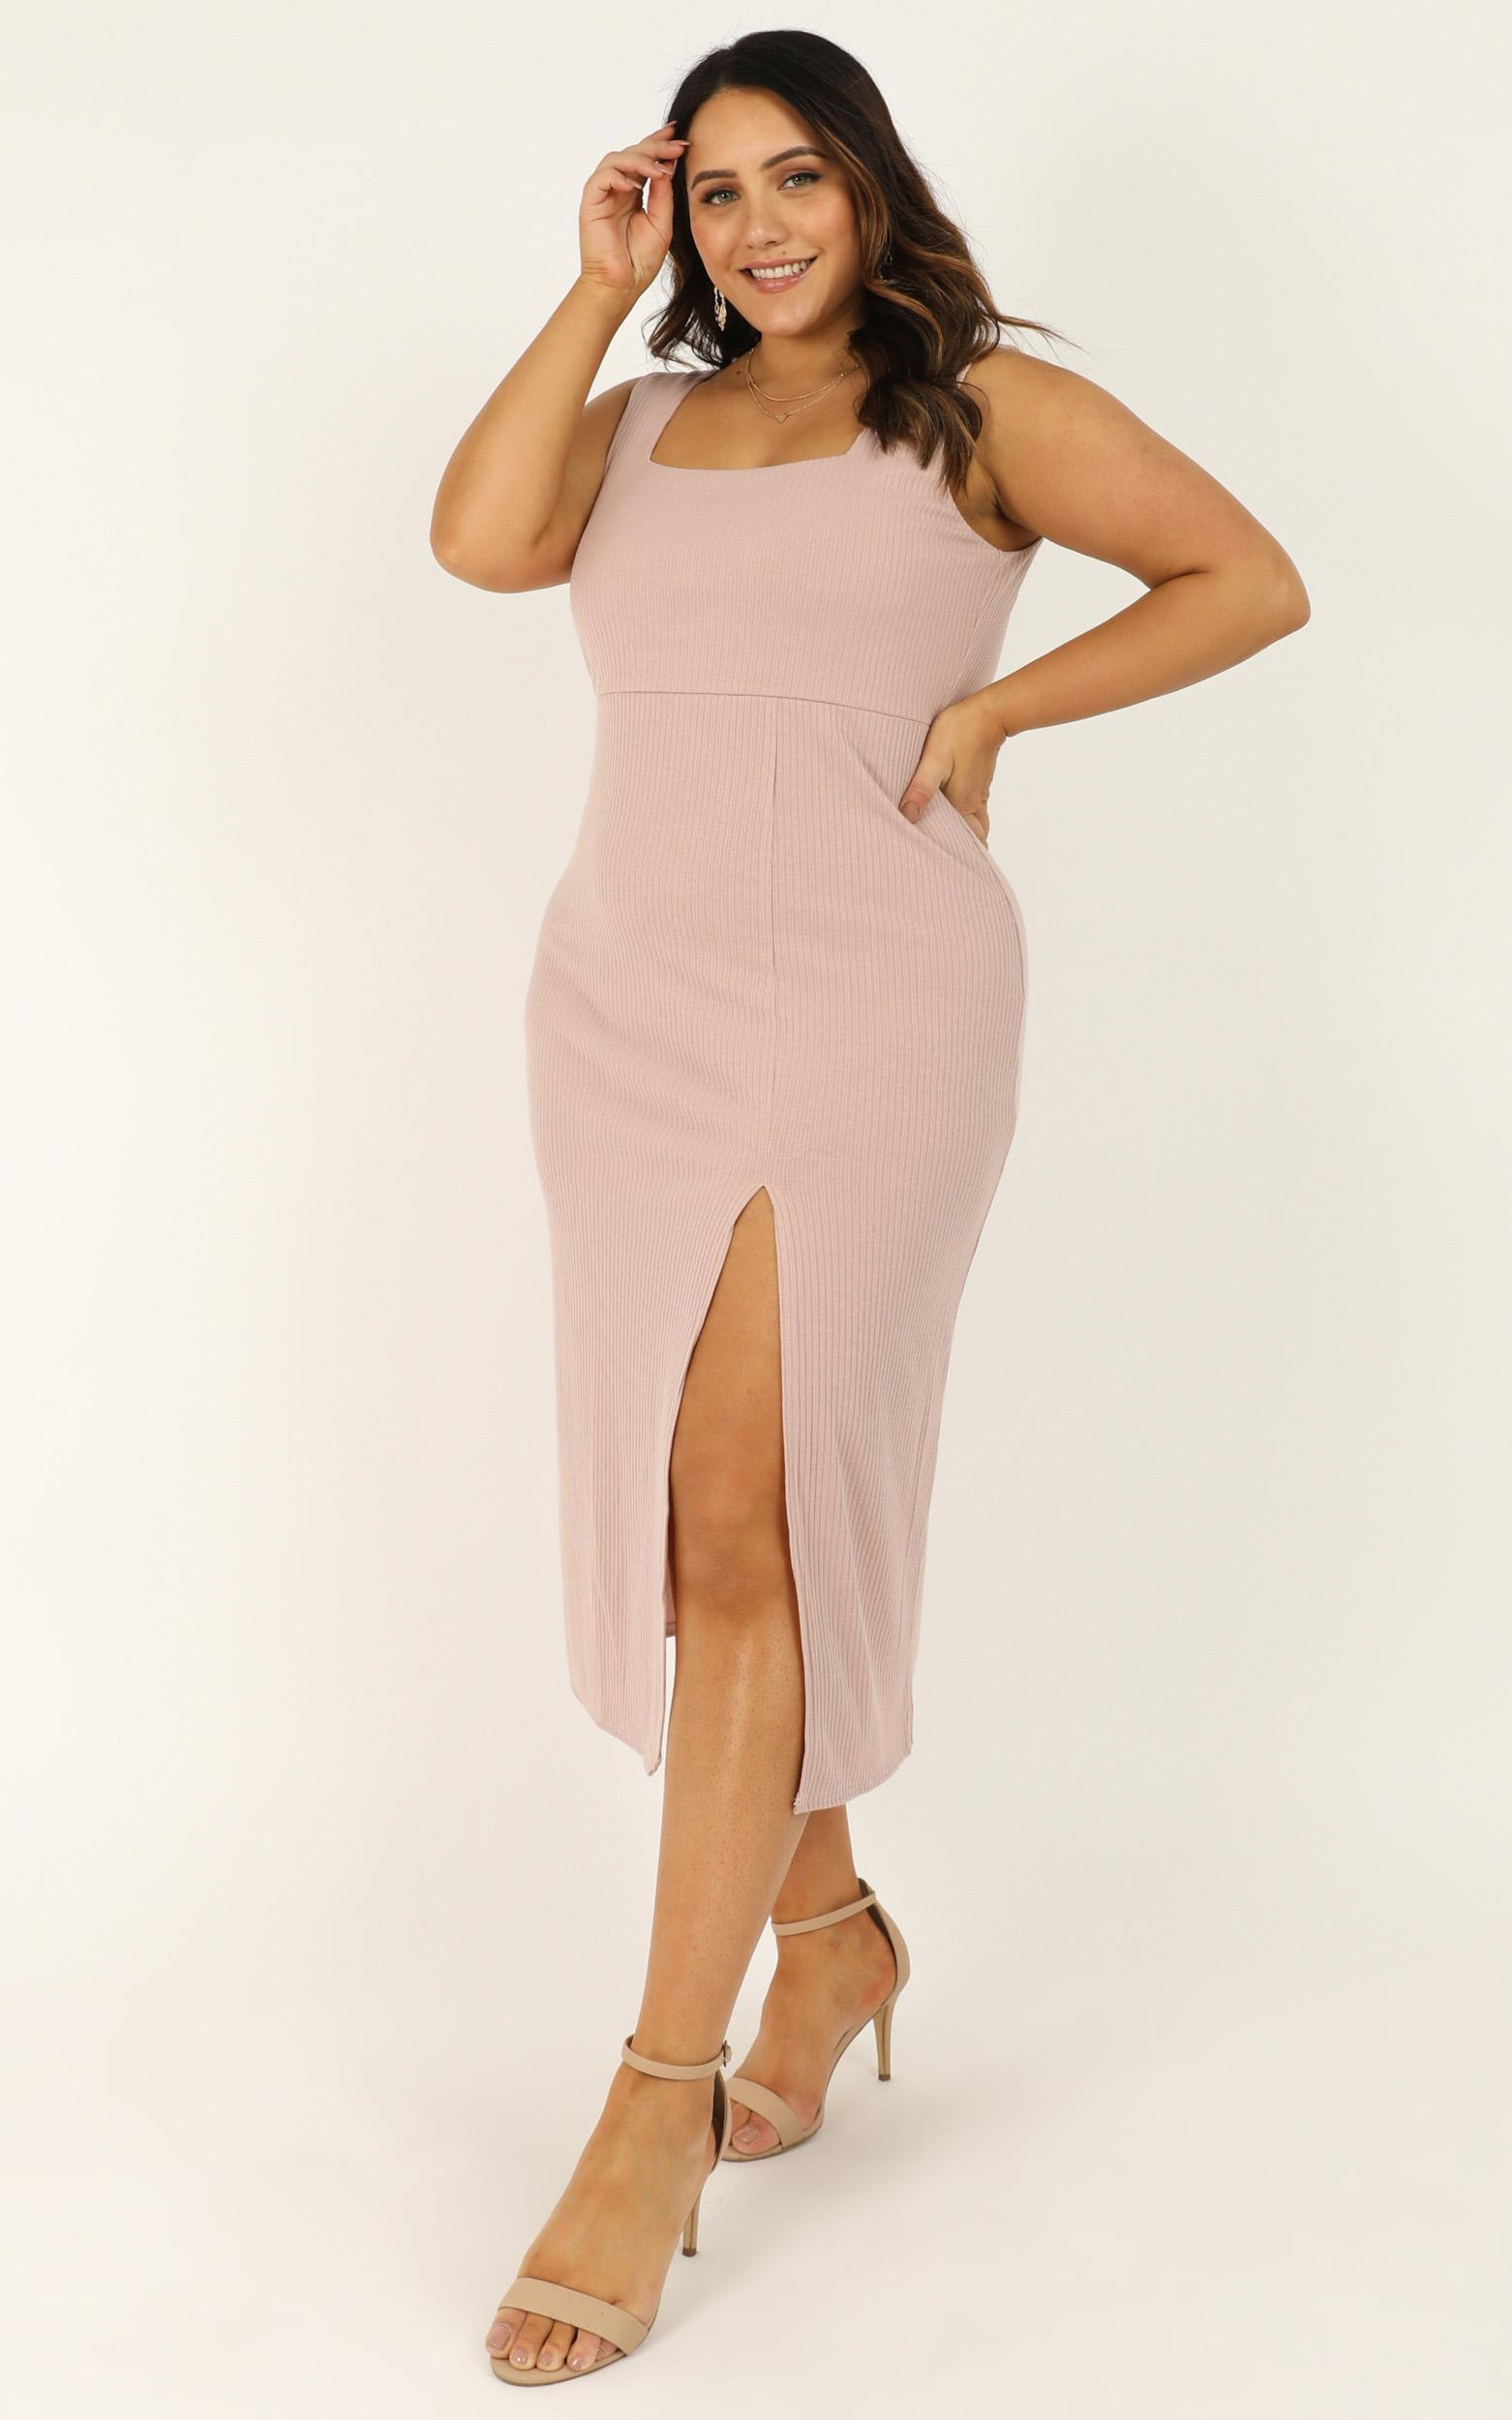 Sticking With My Strengths Dress in blush - 20 (XXXXL), Blush, hi-res image number null